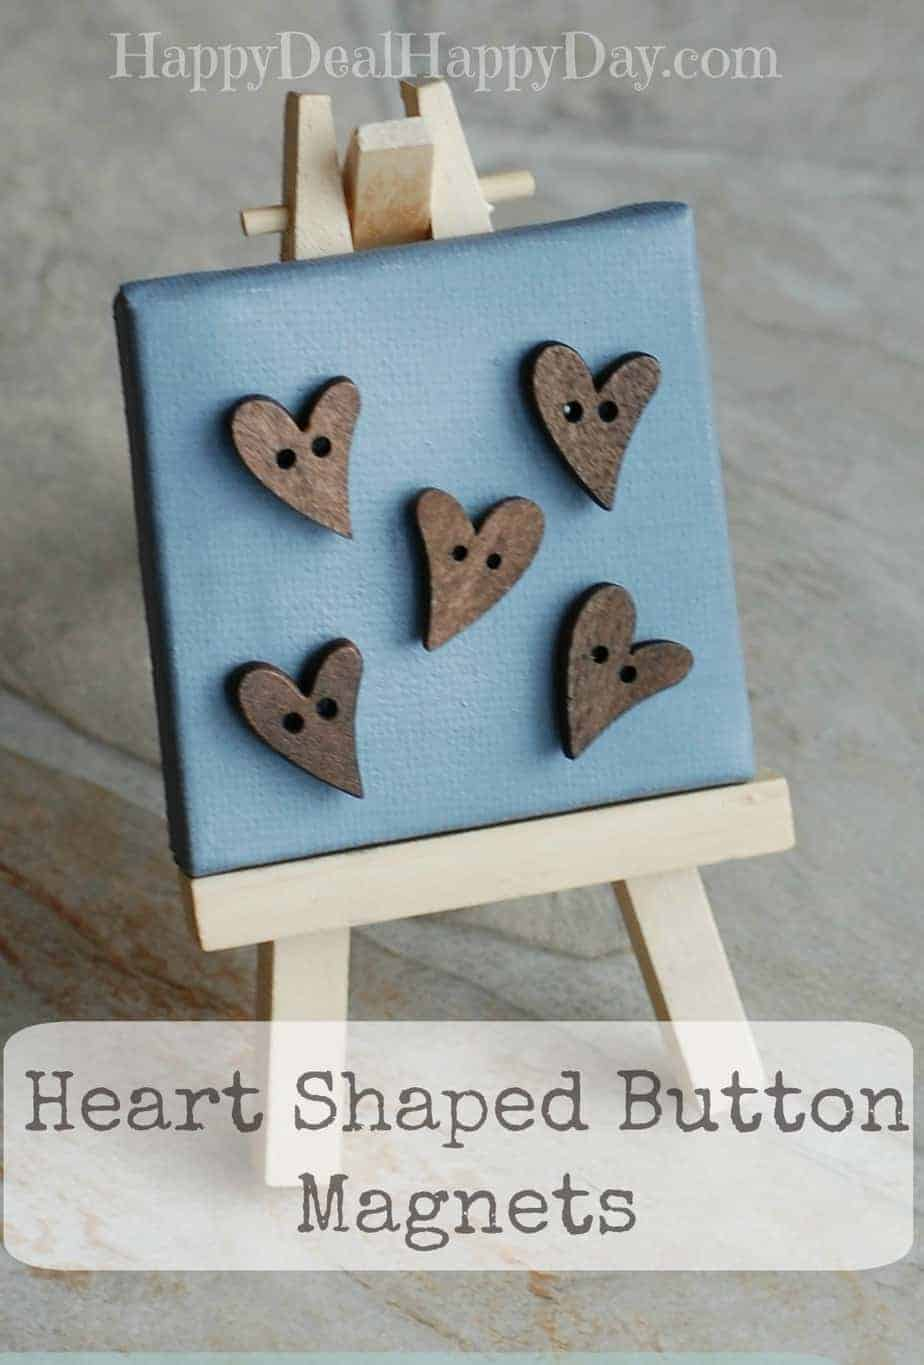 Cute Heart Shaped Button Magnets – Made With Rare Earth Magnets for Extra Strength!